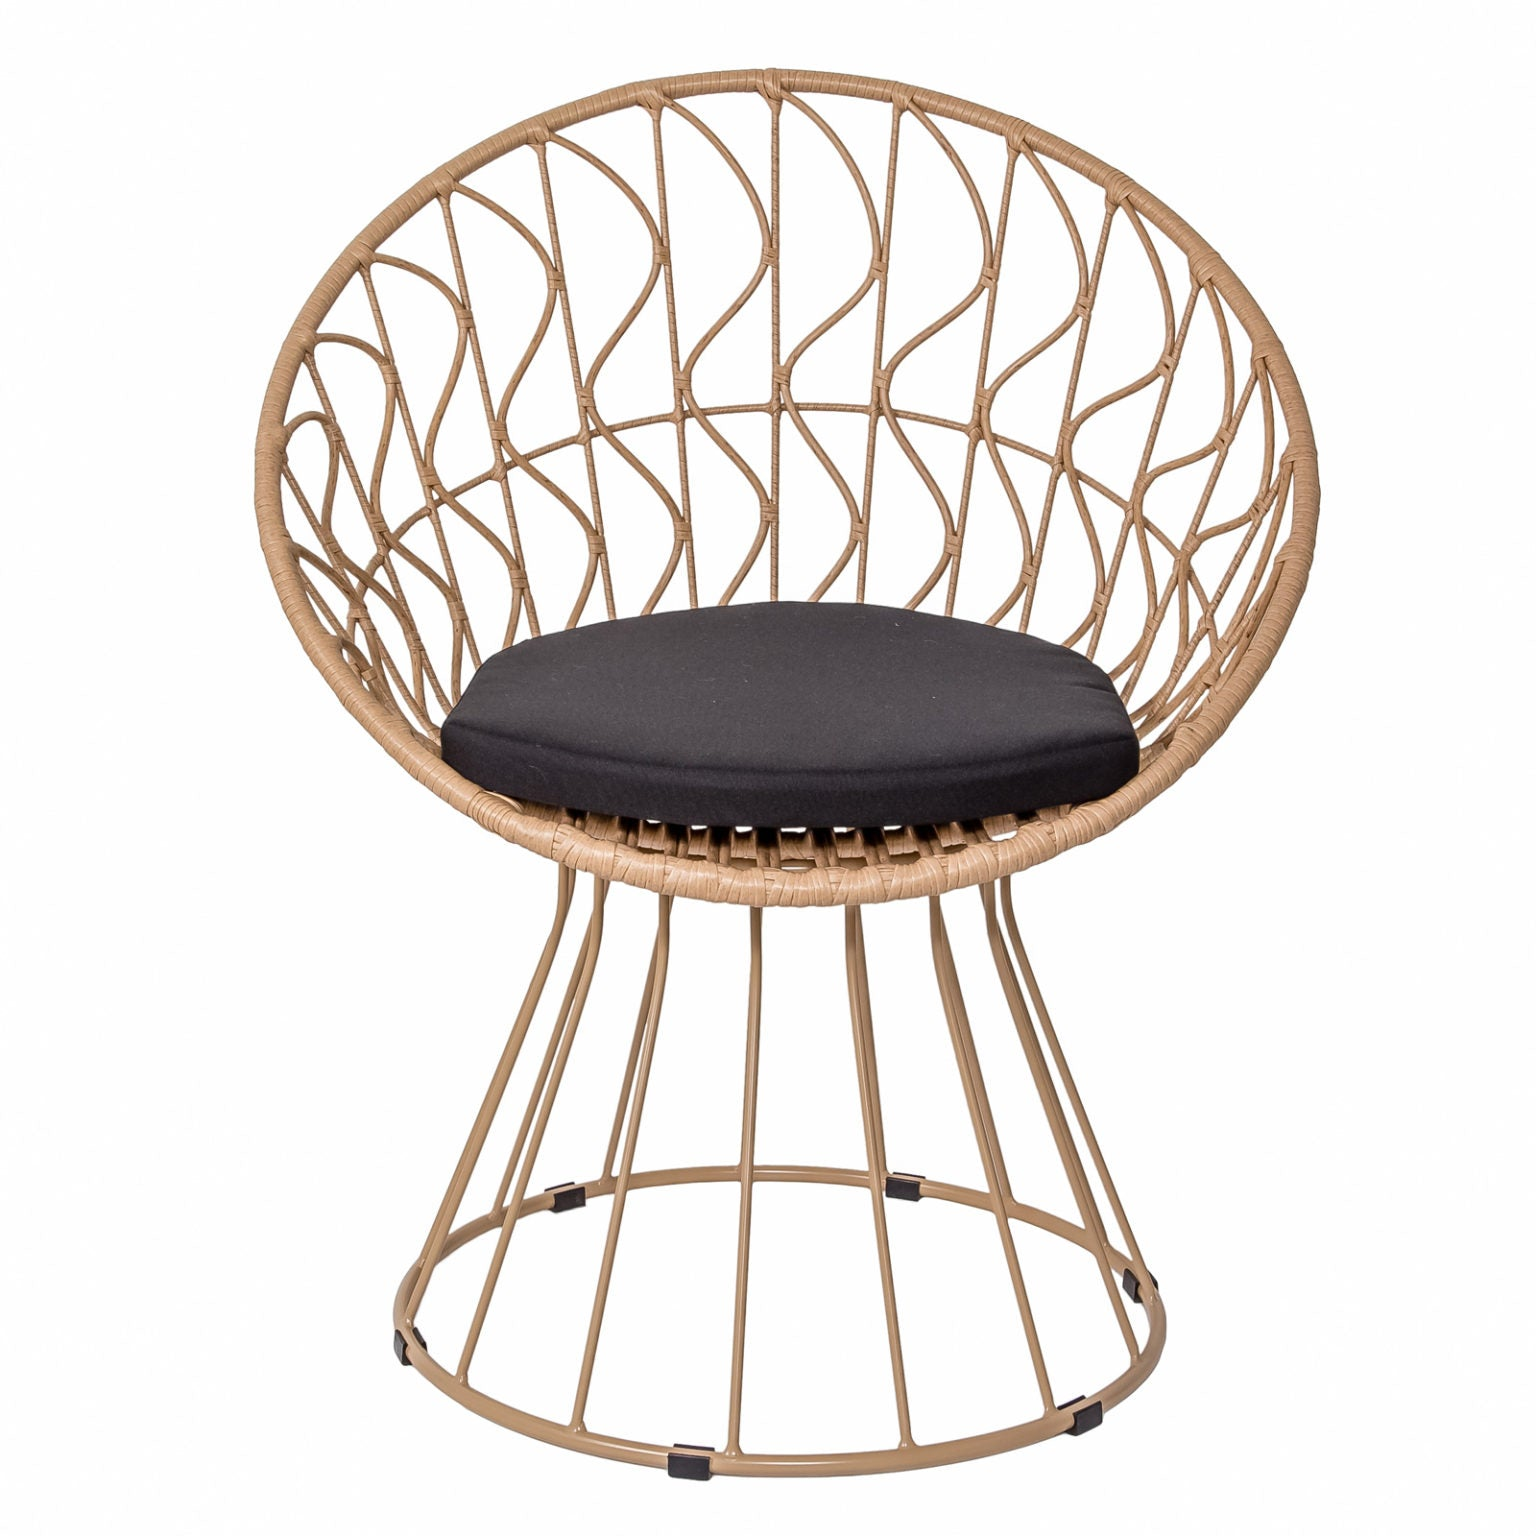 Callie Circle Chair